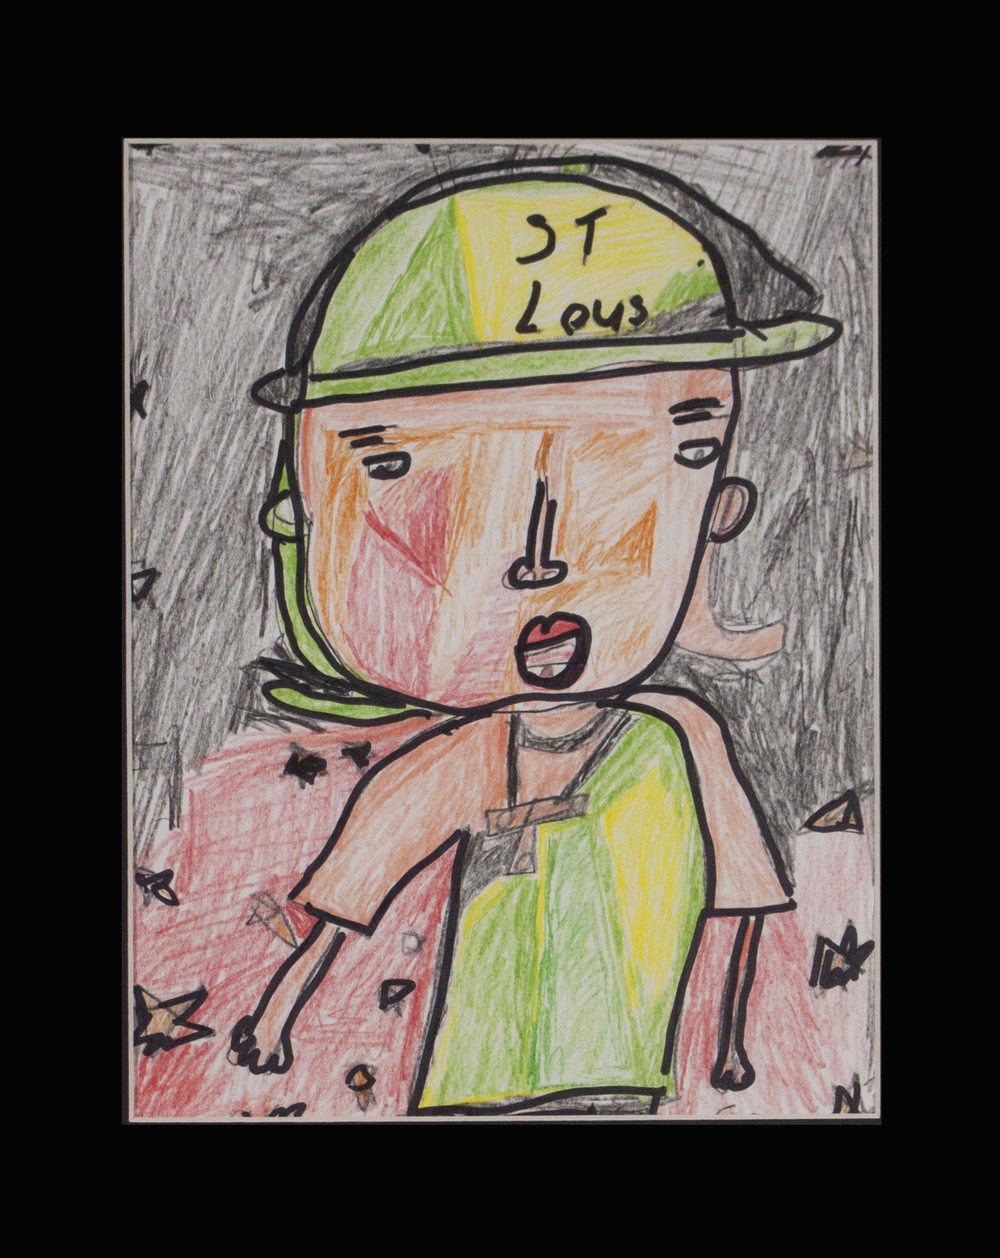 """St. Louis Man . Colored pencil and sharpie on paper. 11"""" x 14"""" matted."""